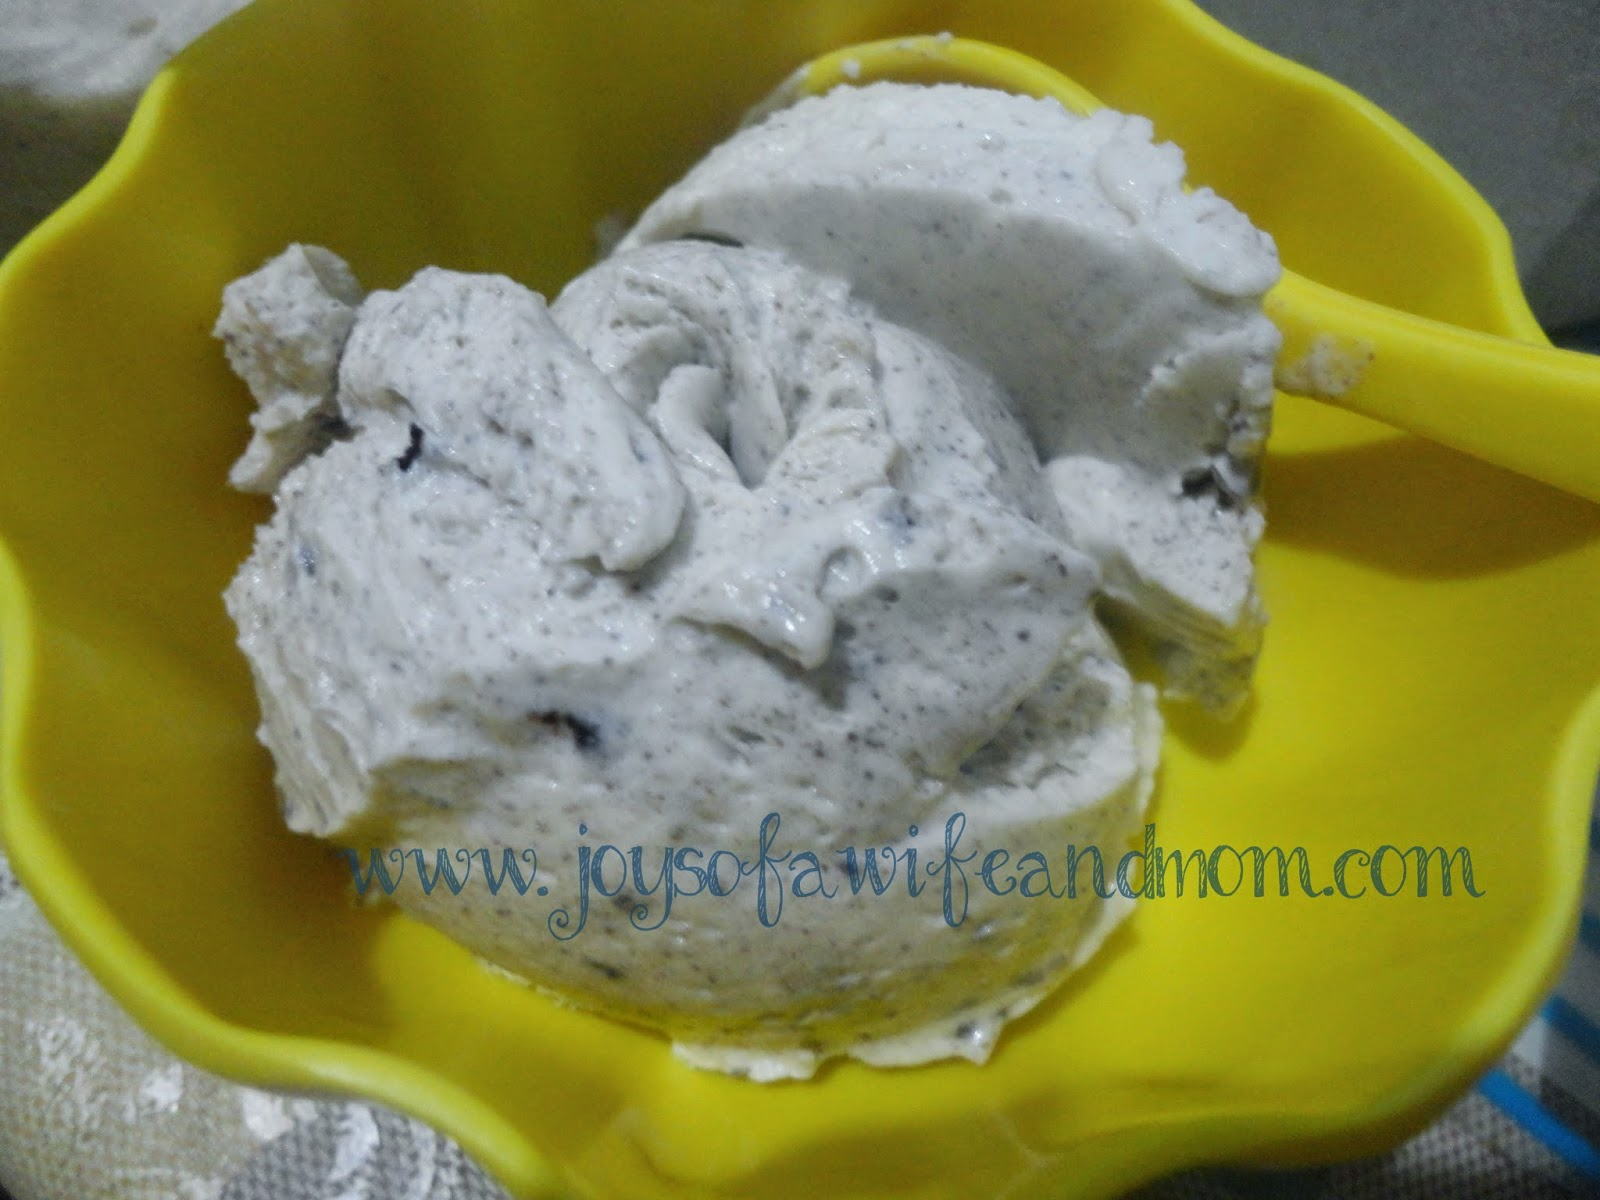 Home-made Ice Cream with Oreo Cookies